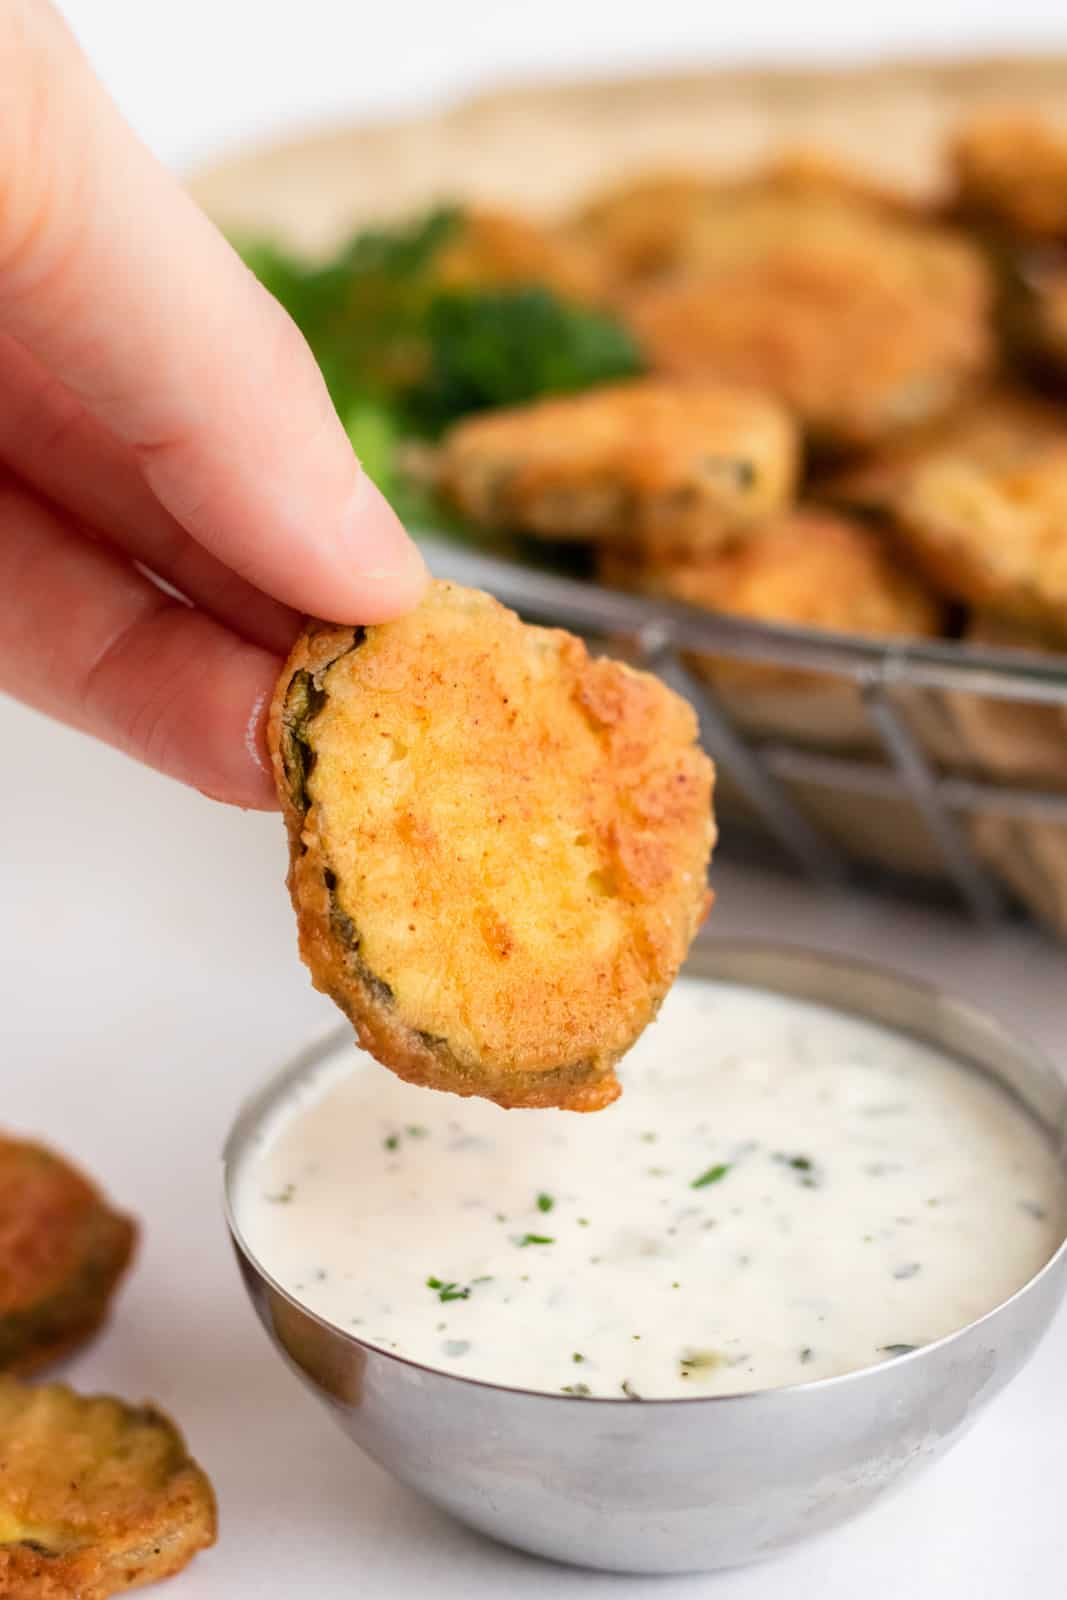 Hand dipping one pickle into ranch dressing